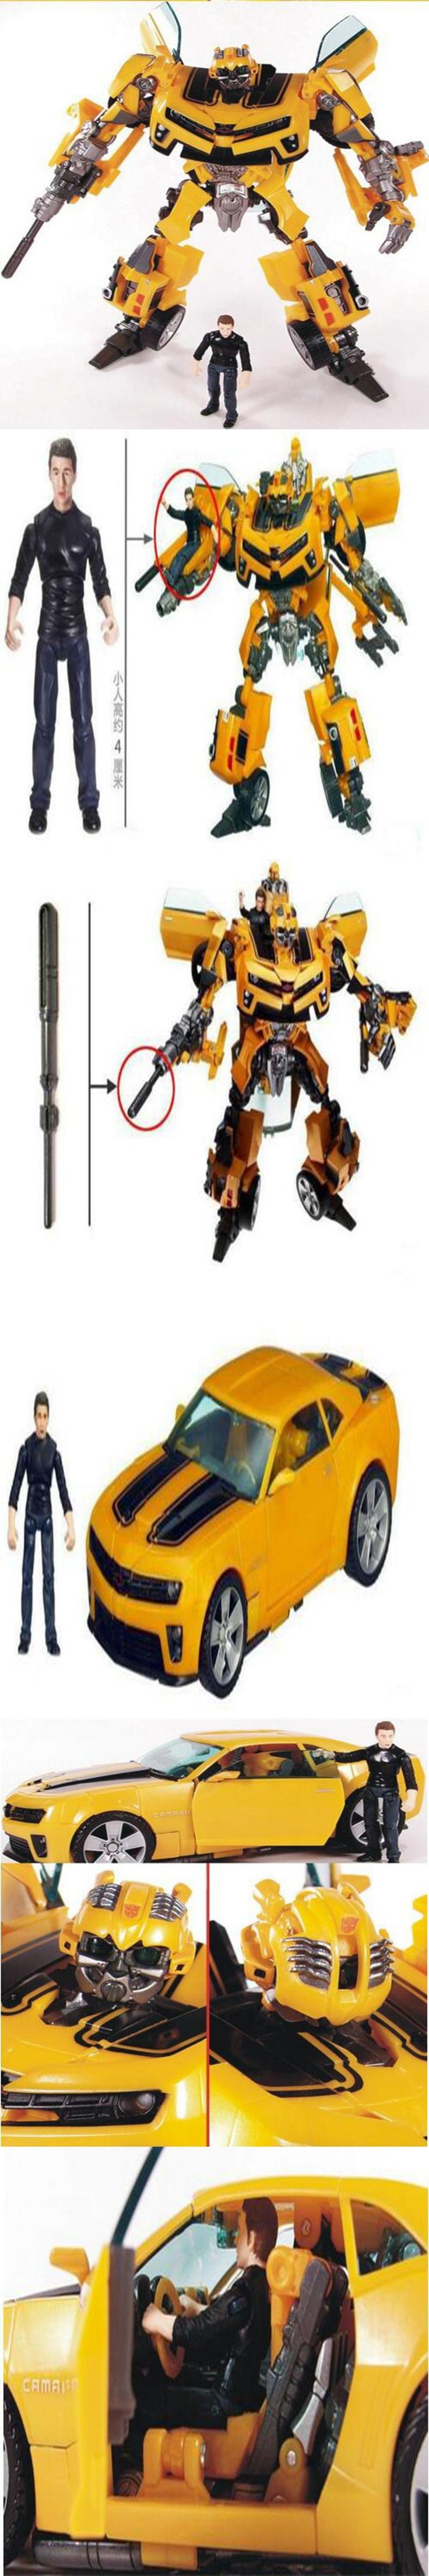 Anime Transformation Robot Bumblebee and Sam Action Figures Toys Brinquedos Robots Action Figures Classic juguetes kids toys